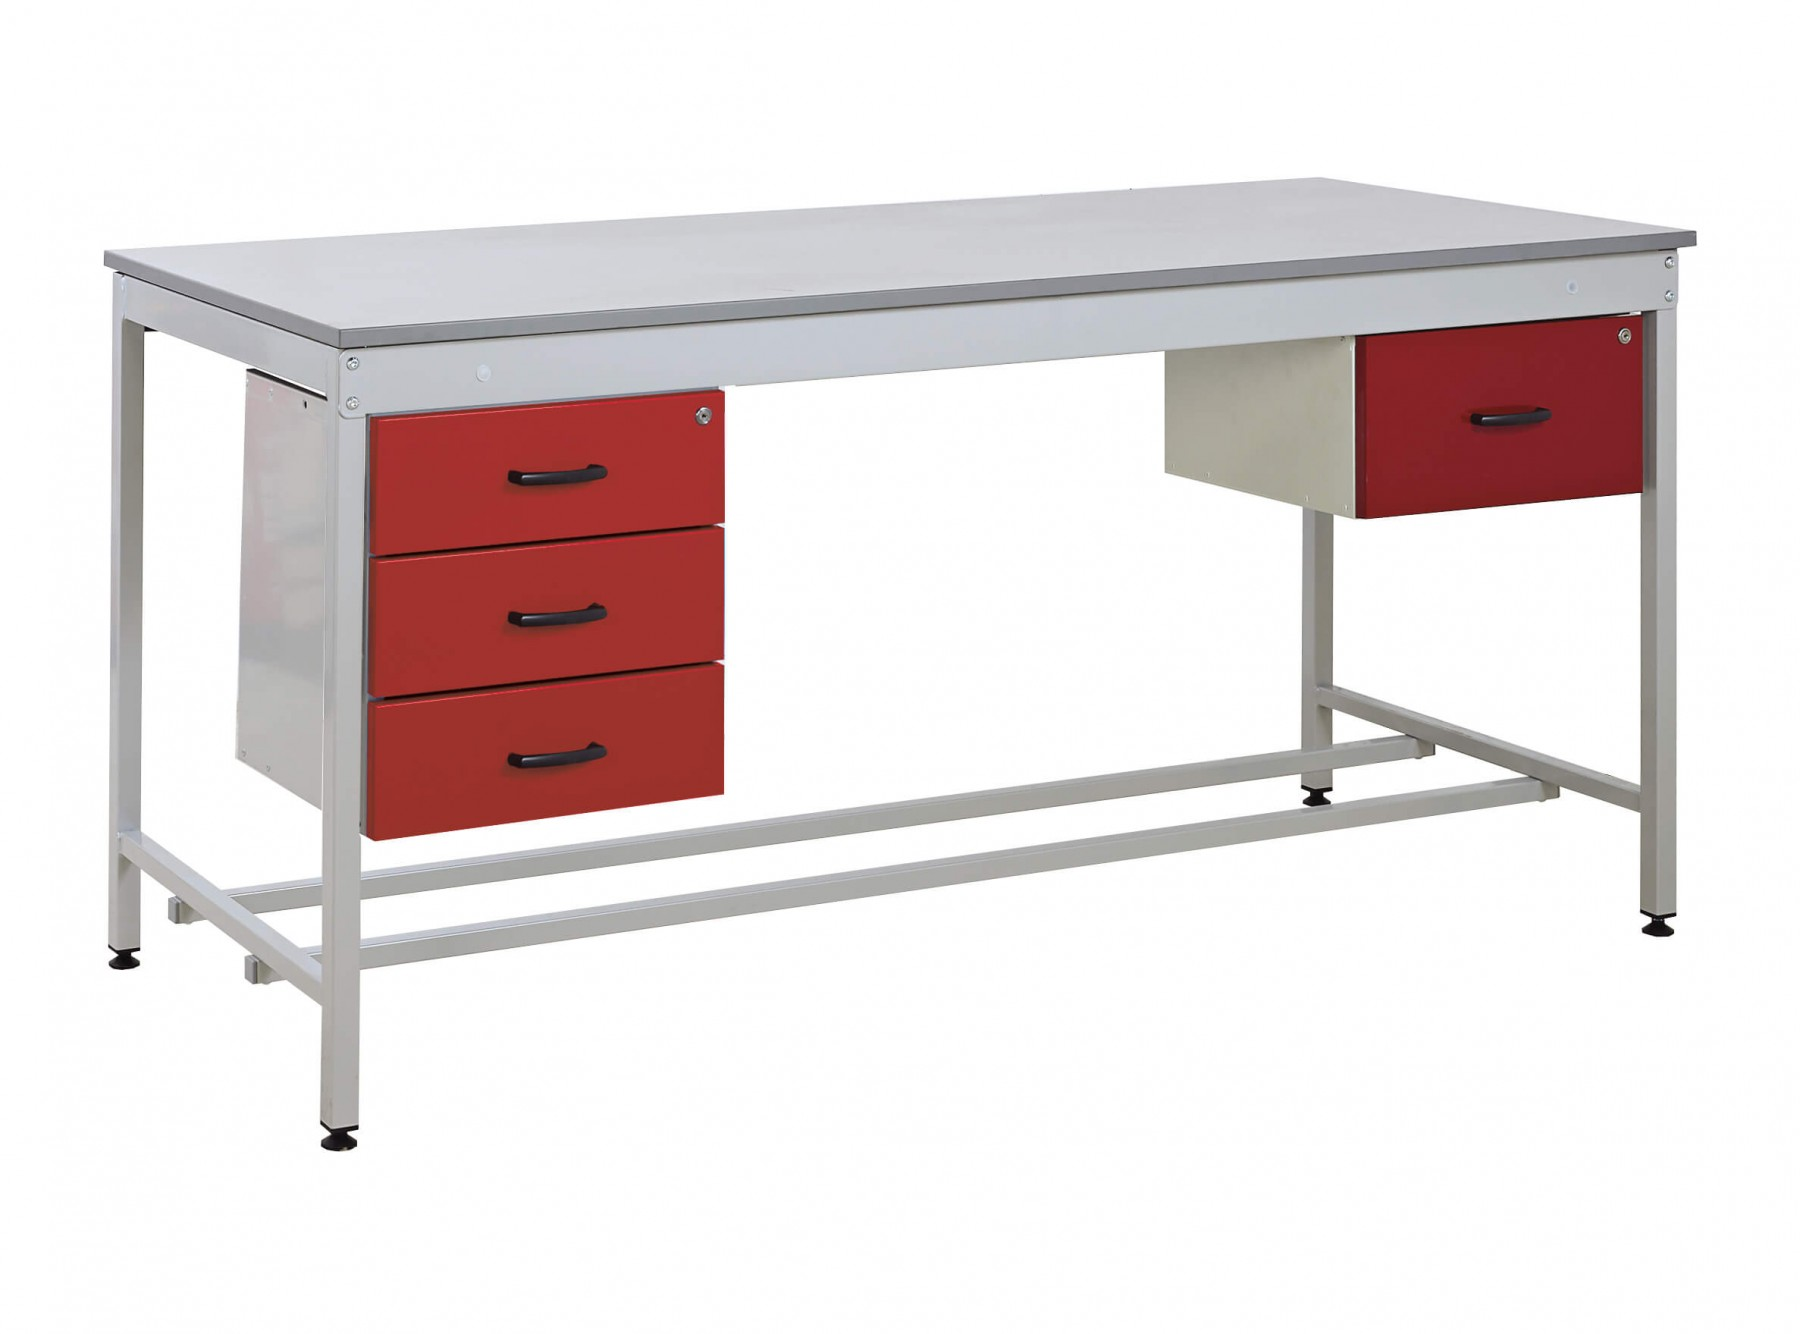 Taurus Utility Workbench - Triple Drawer & Single draw